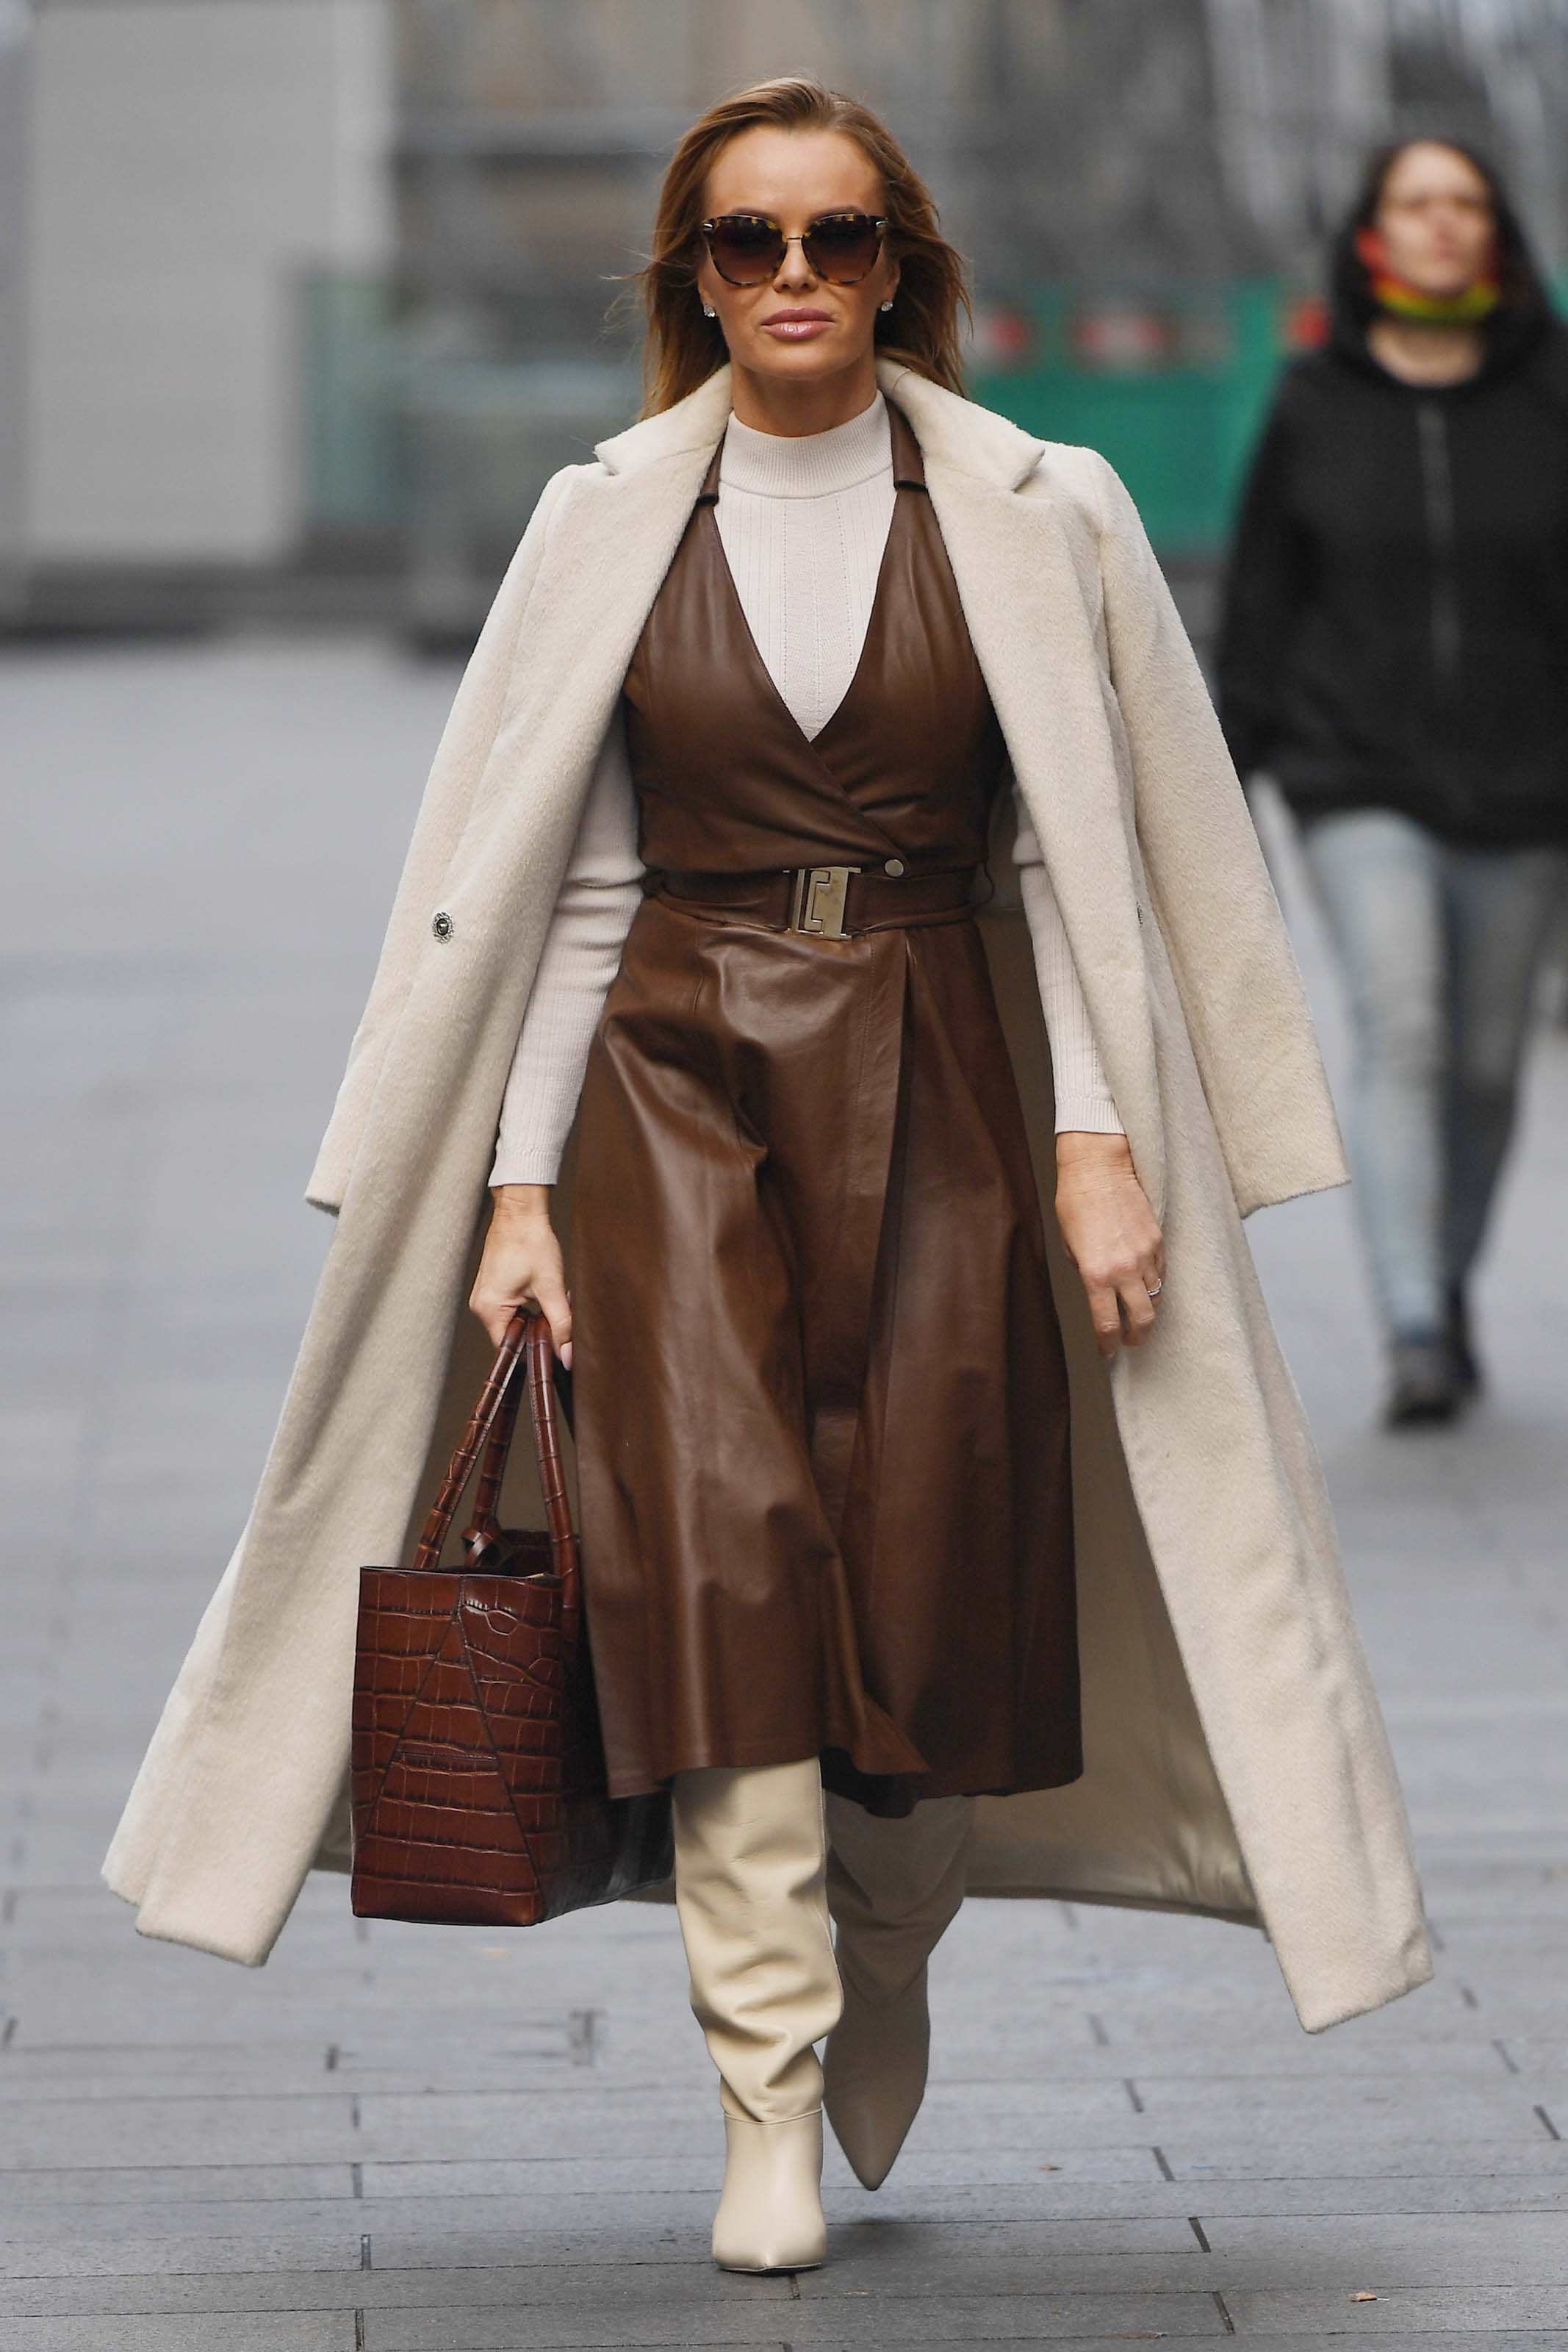 Amanda Holden seen at Global studios after the Heart Breakfast show in London